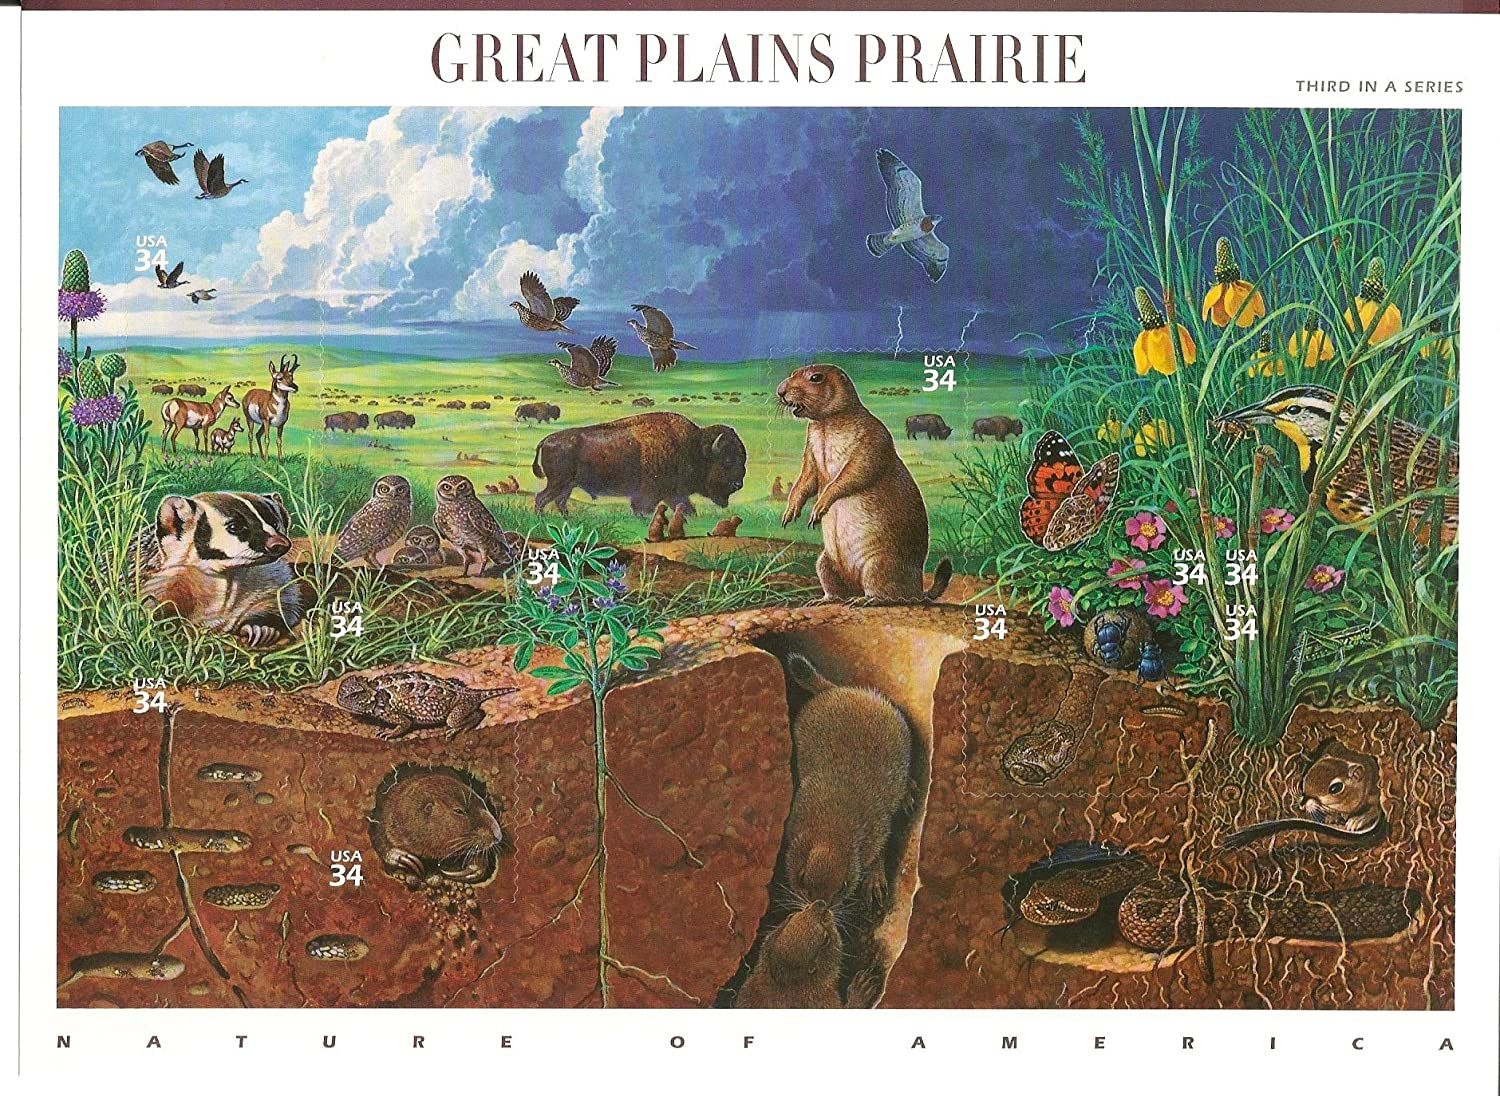 Great Plains Prairie (Nature of America), Full Sheet of 10 x 34-Cent Postage Stamps, USA 2001, Scott 3506